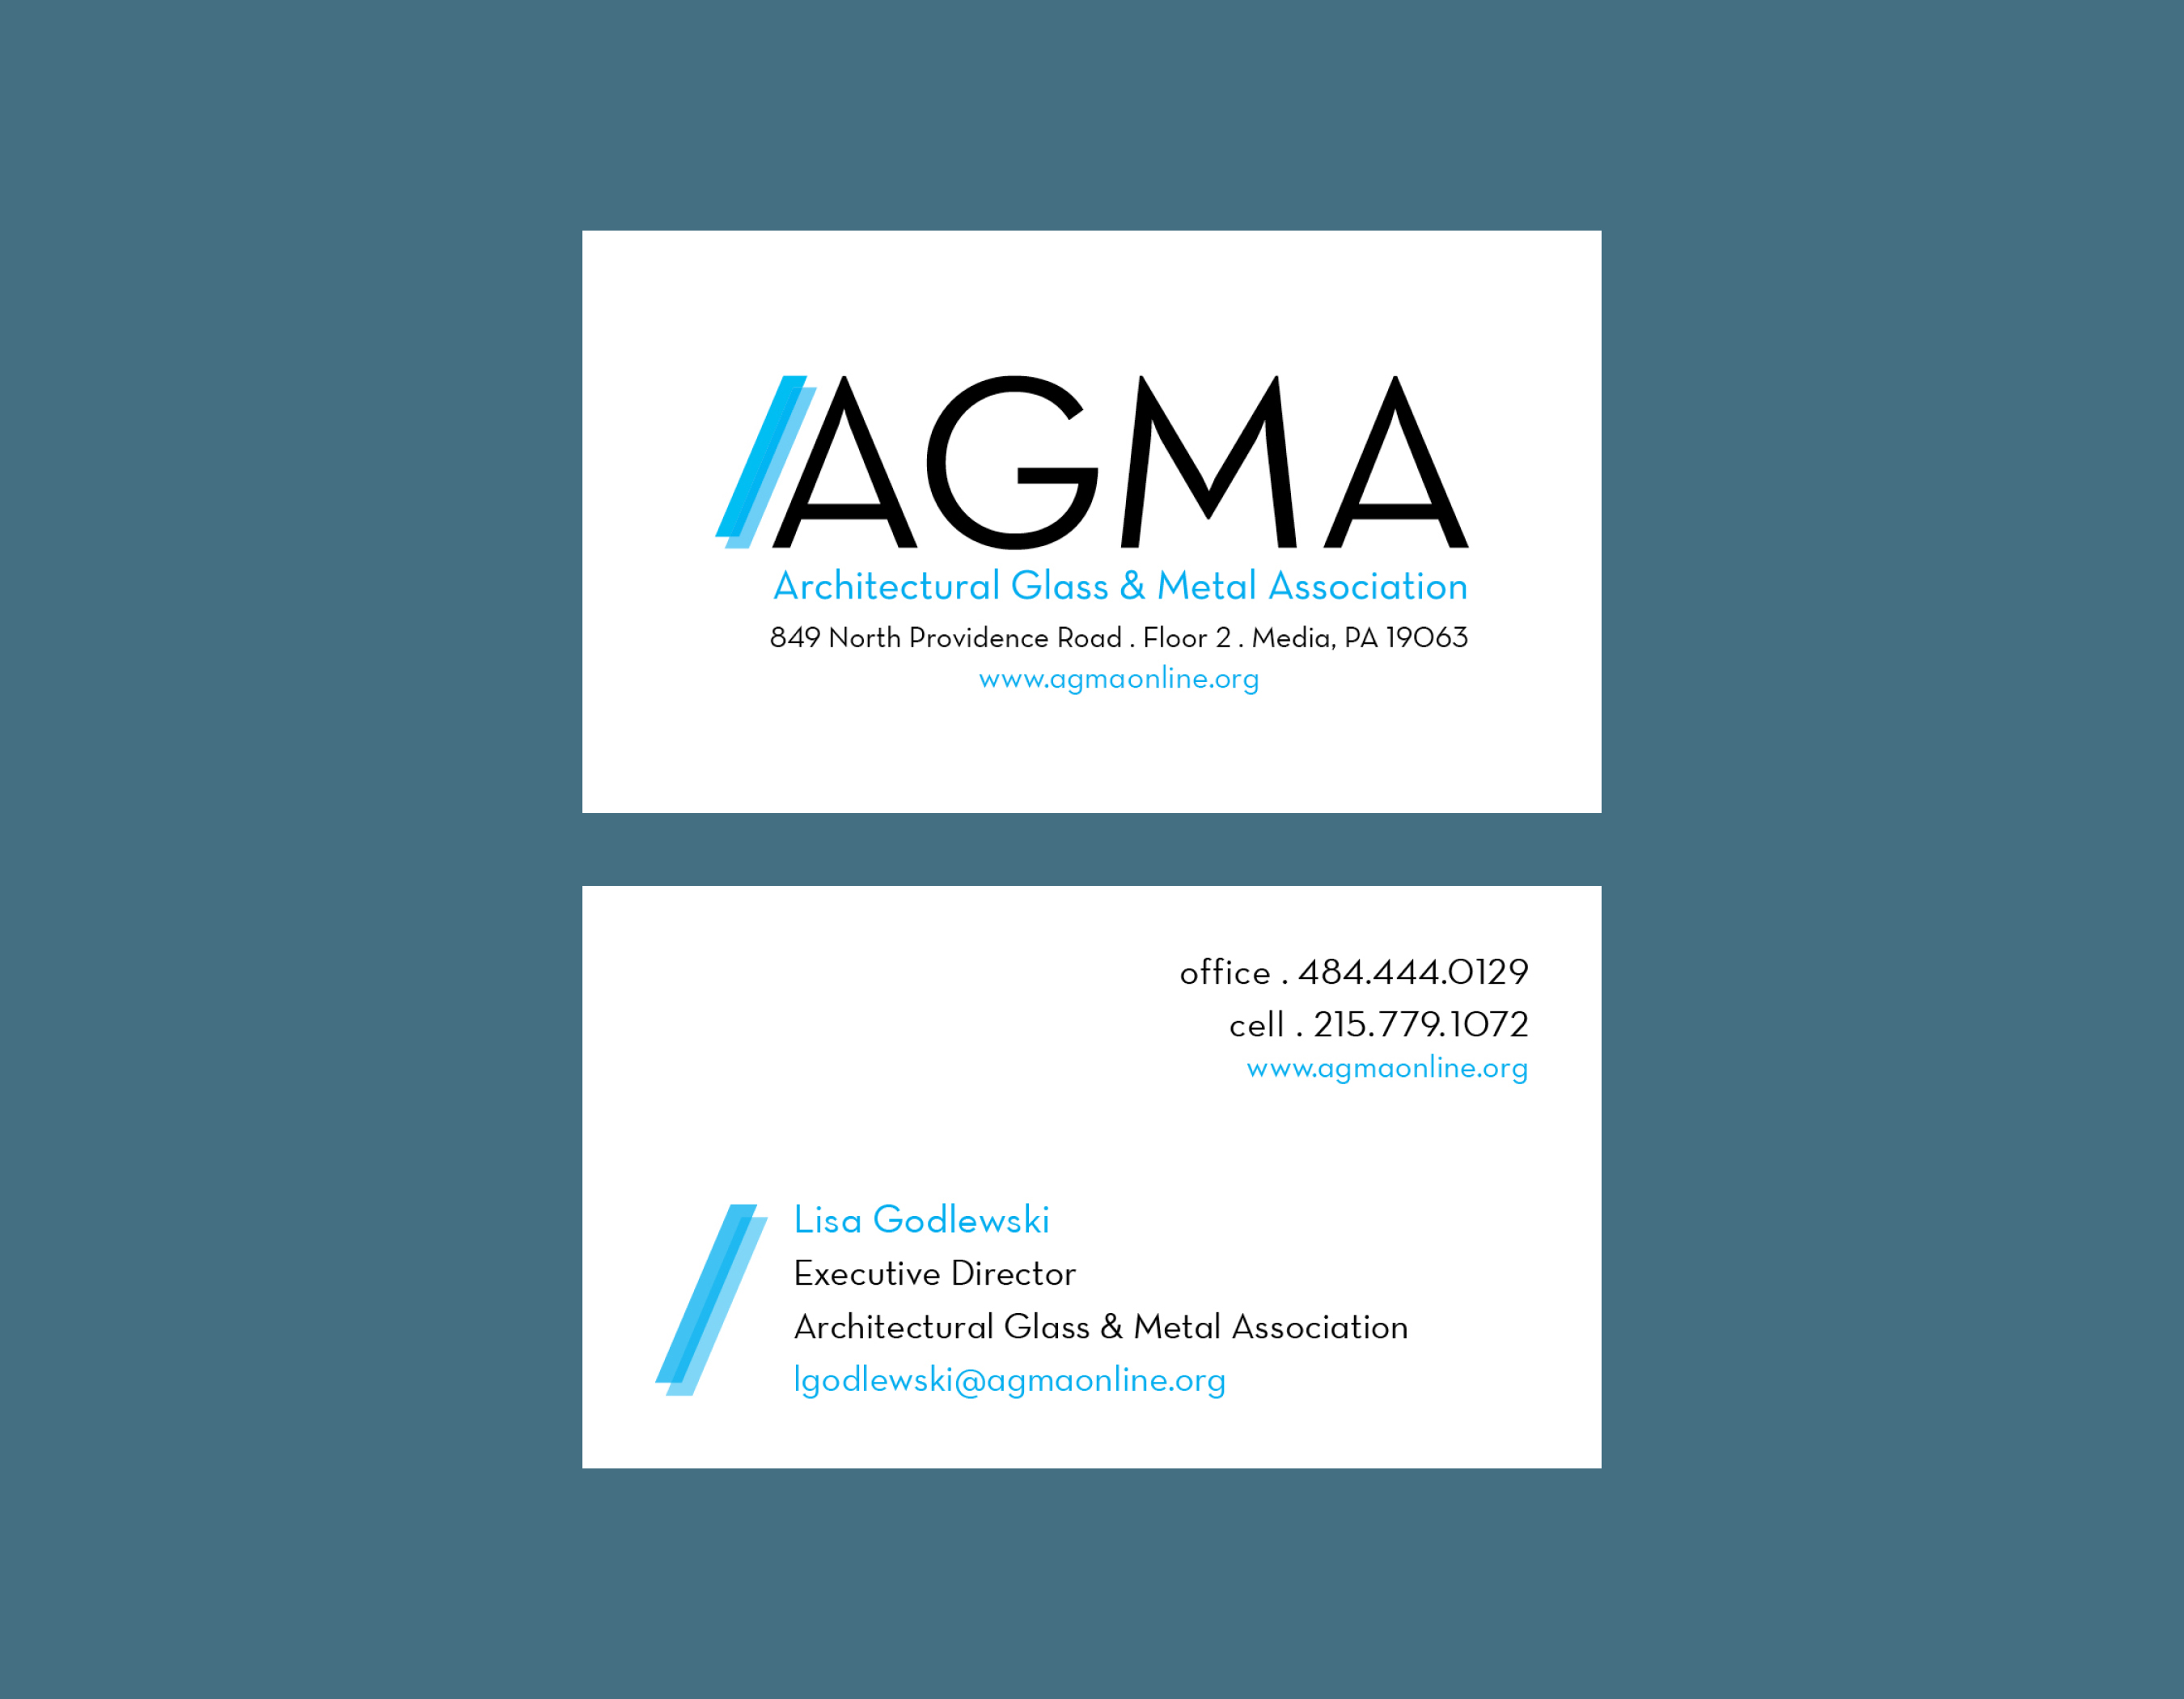 Architectural Glass & Metal Association